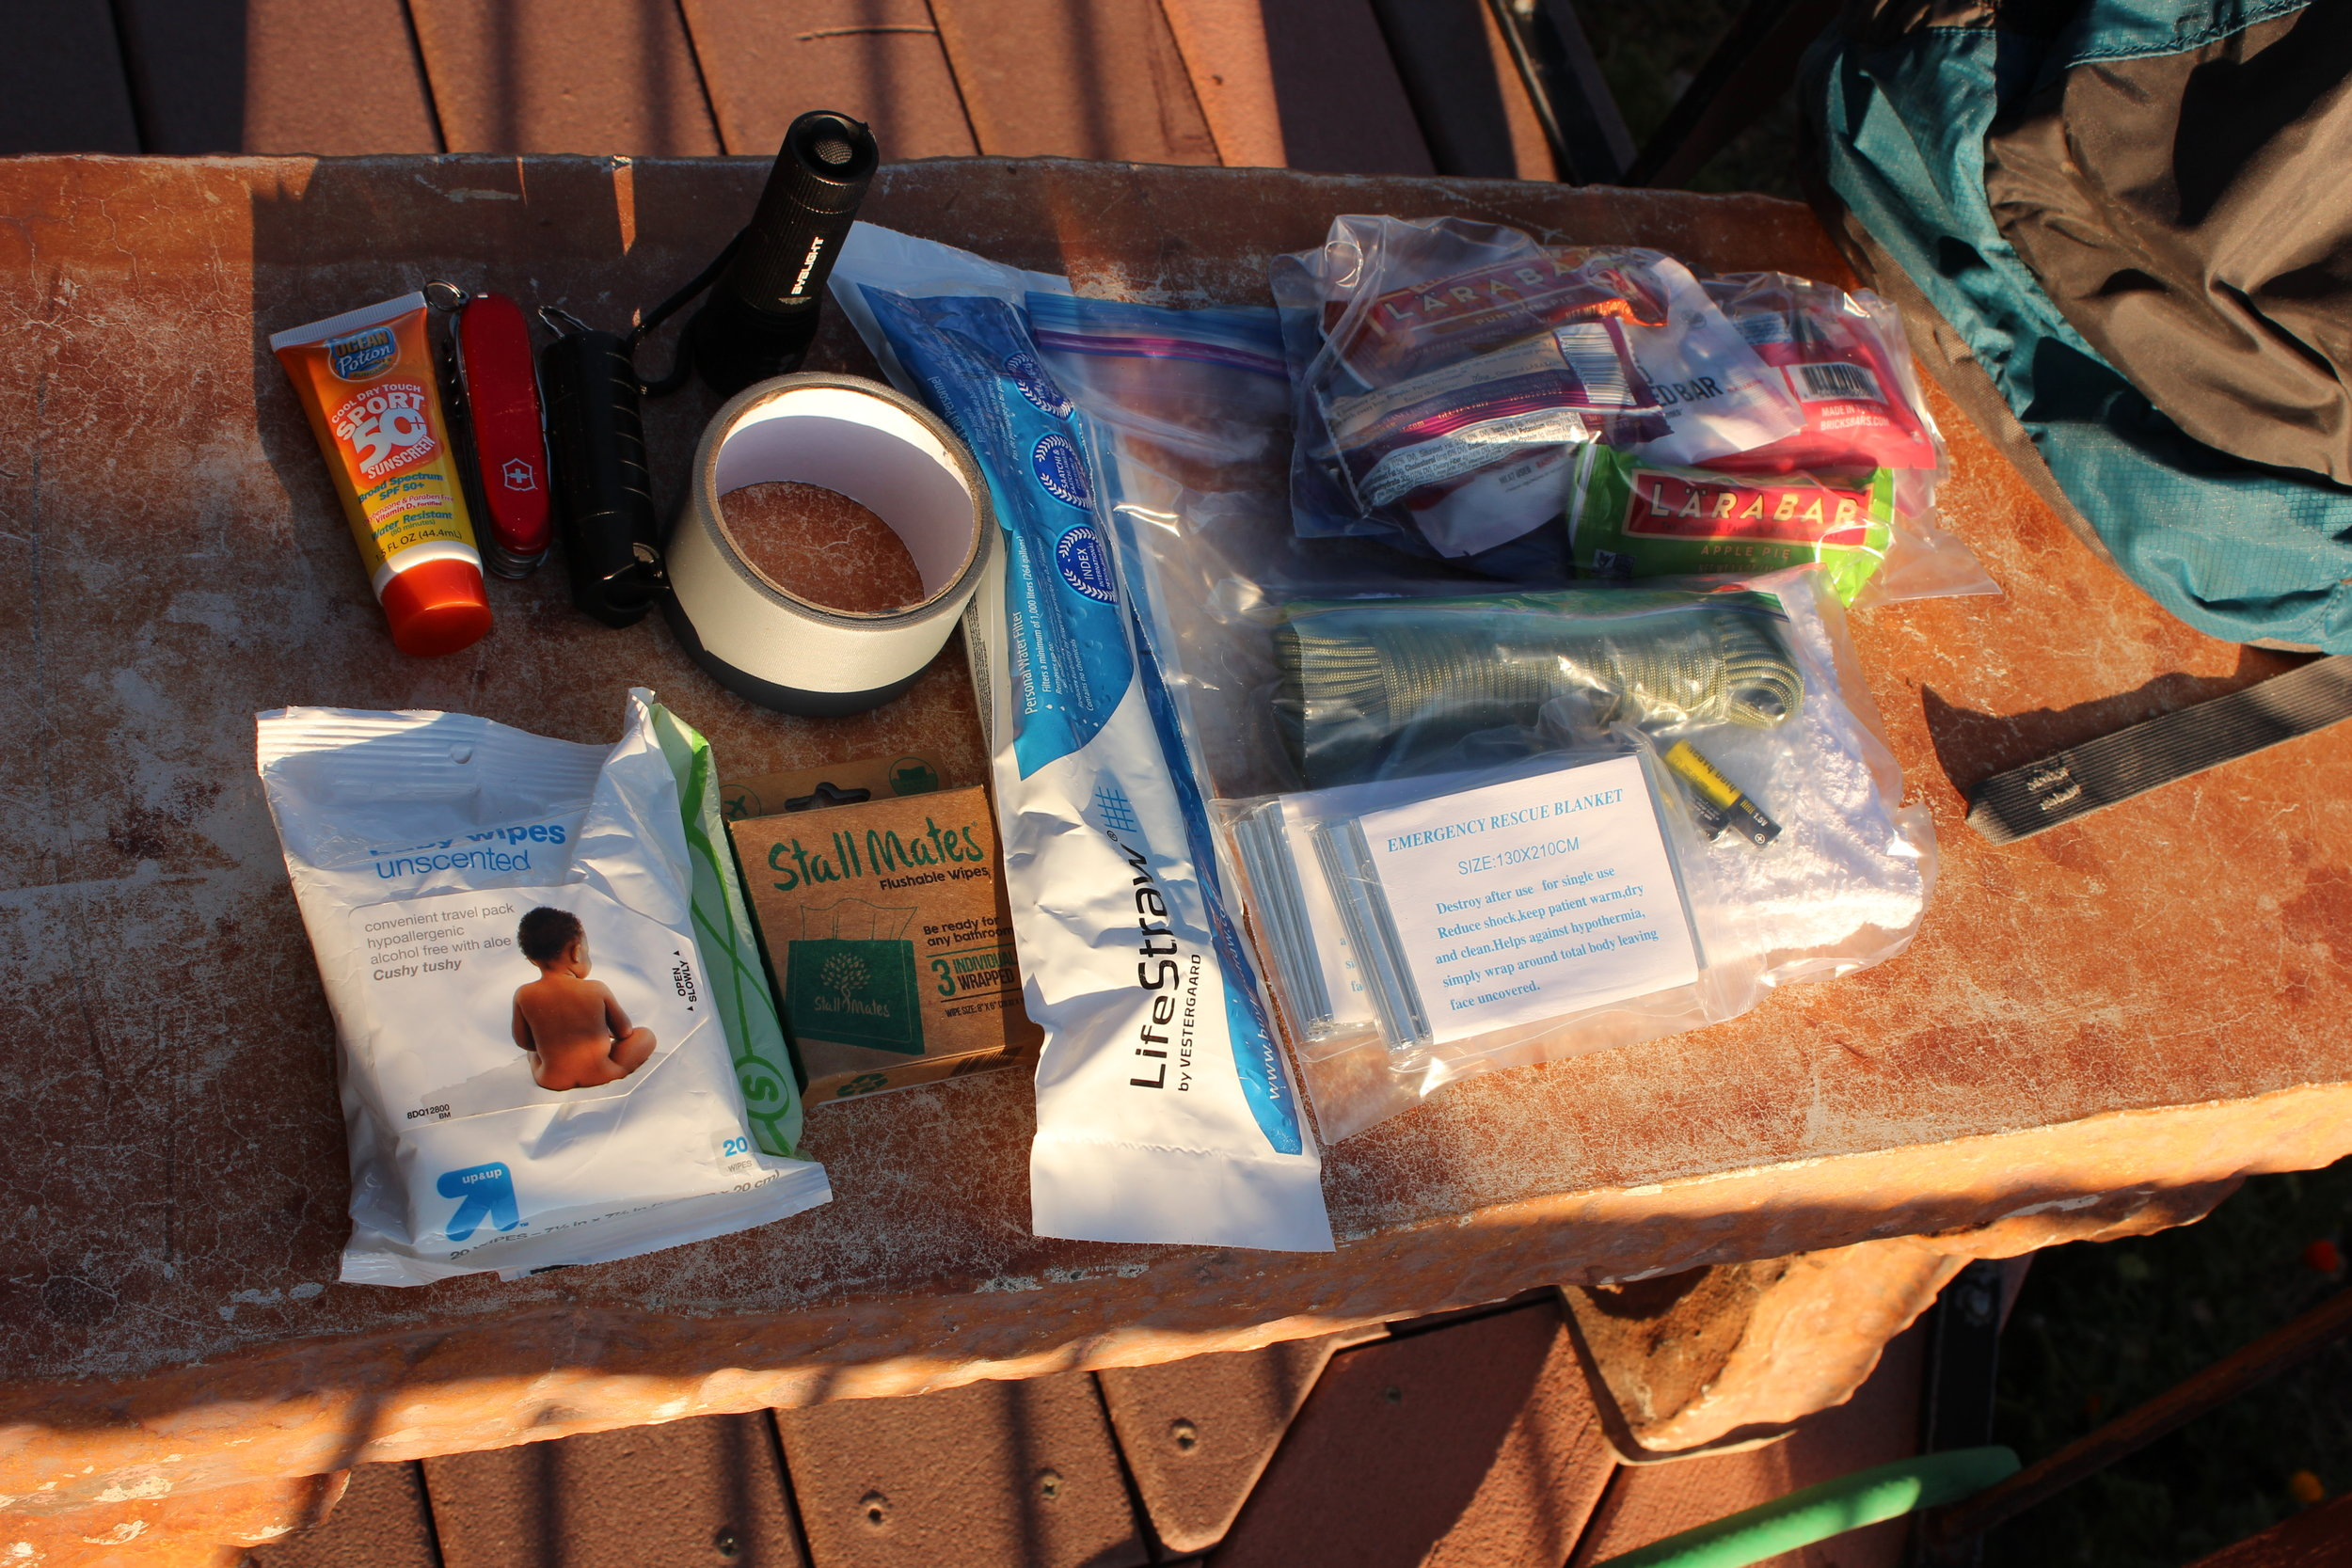 Here is a little sampling of some other things in my Get Home bag.